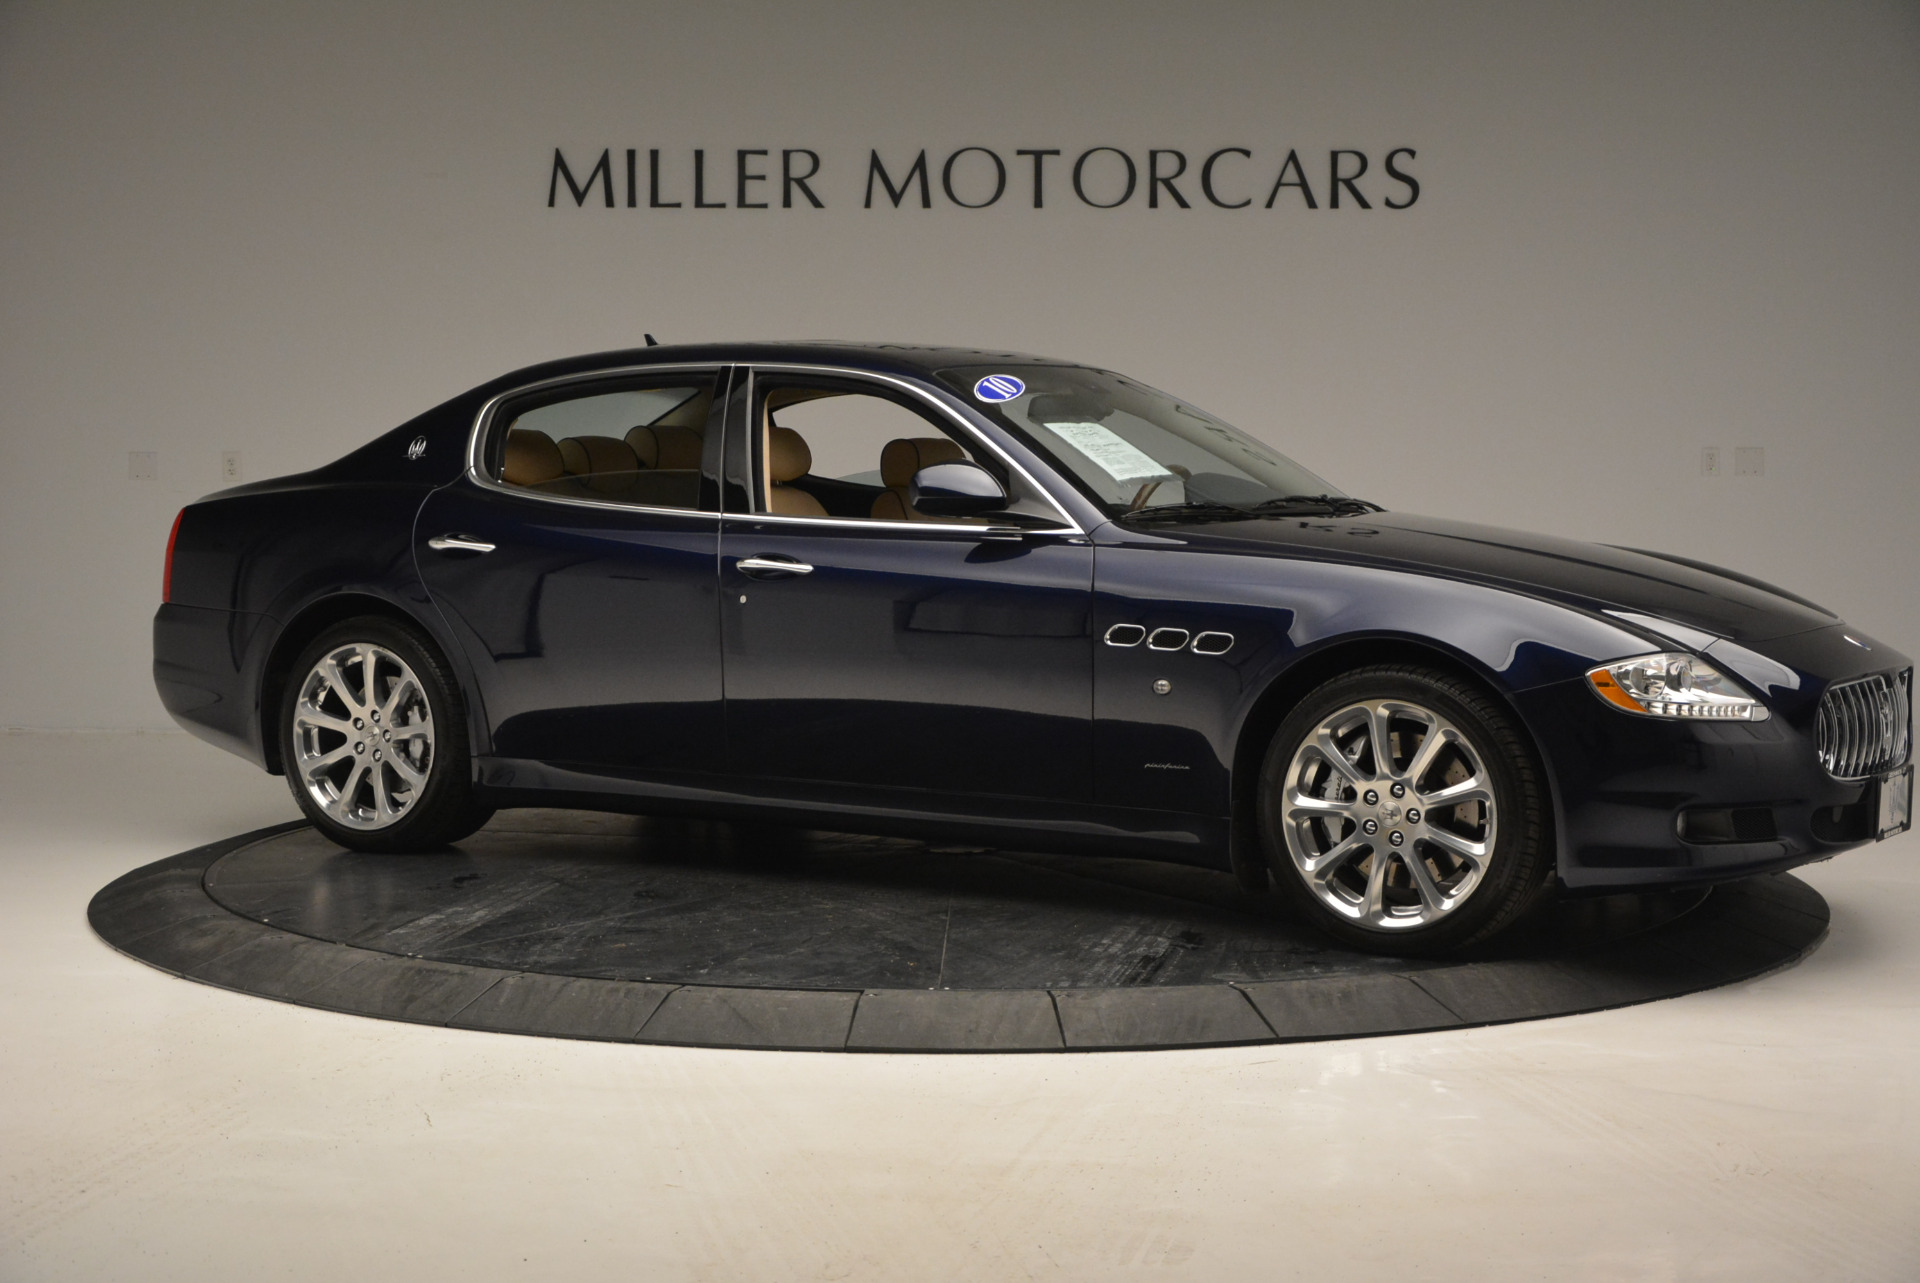 Used 2010 Maserati Quattroporte S For Sale In Greenwich, CT 795_p10